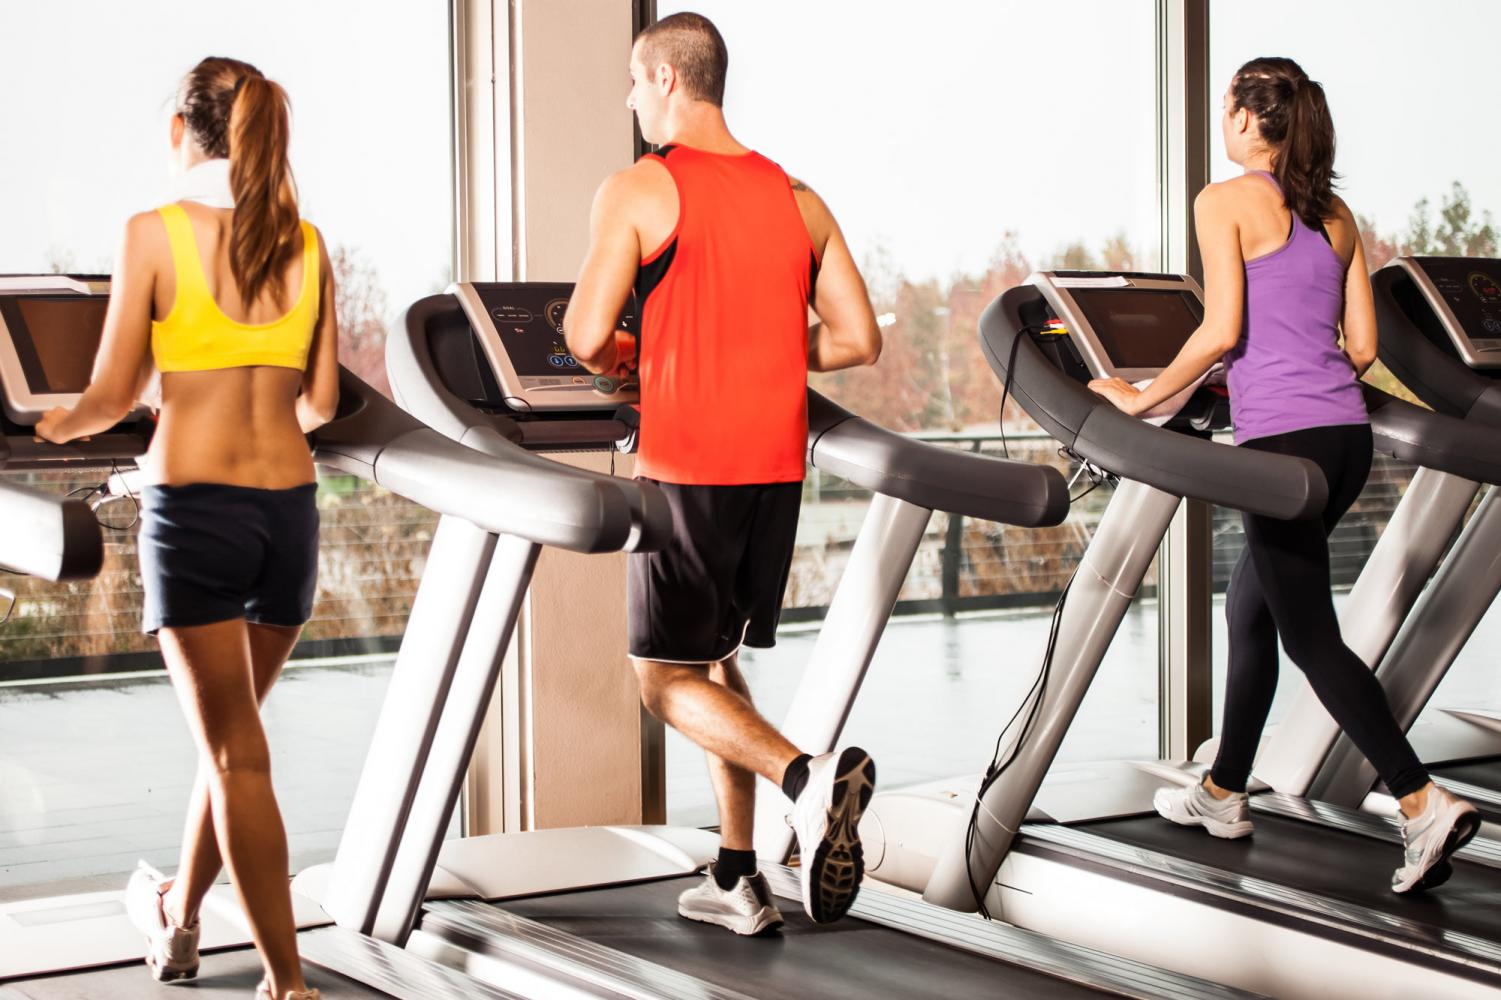 Going to the gym creates a pattern in one's daily routine, creating a healthy habit.